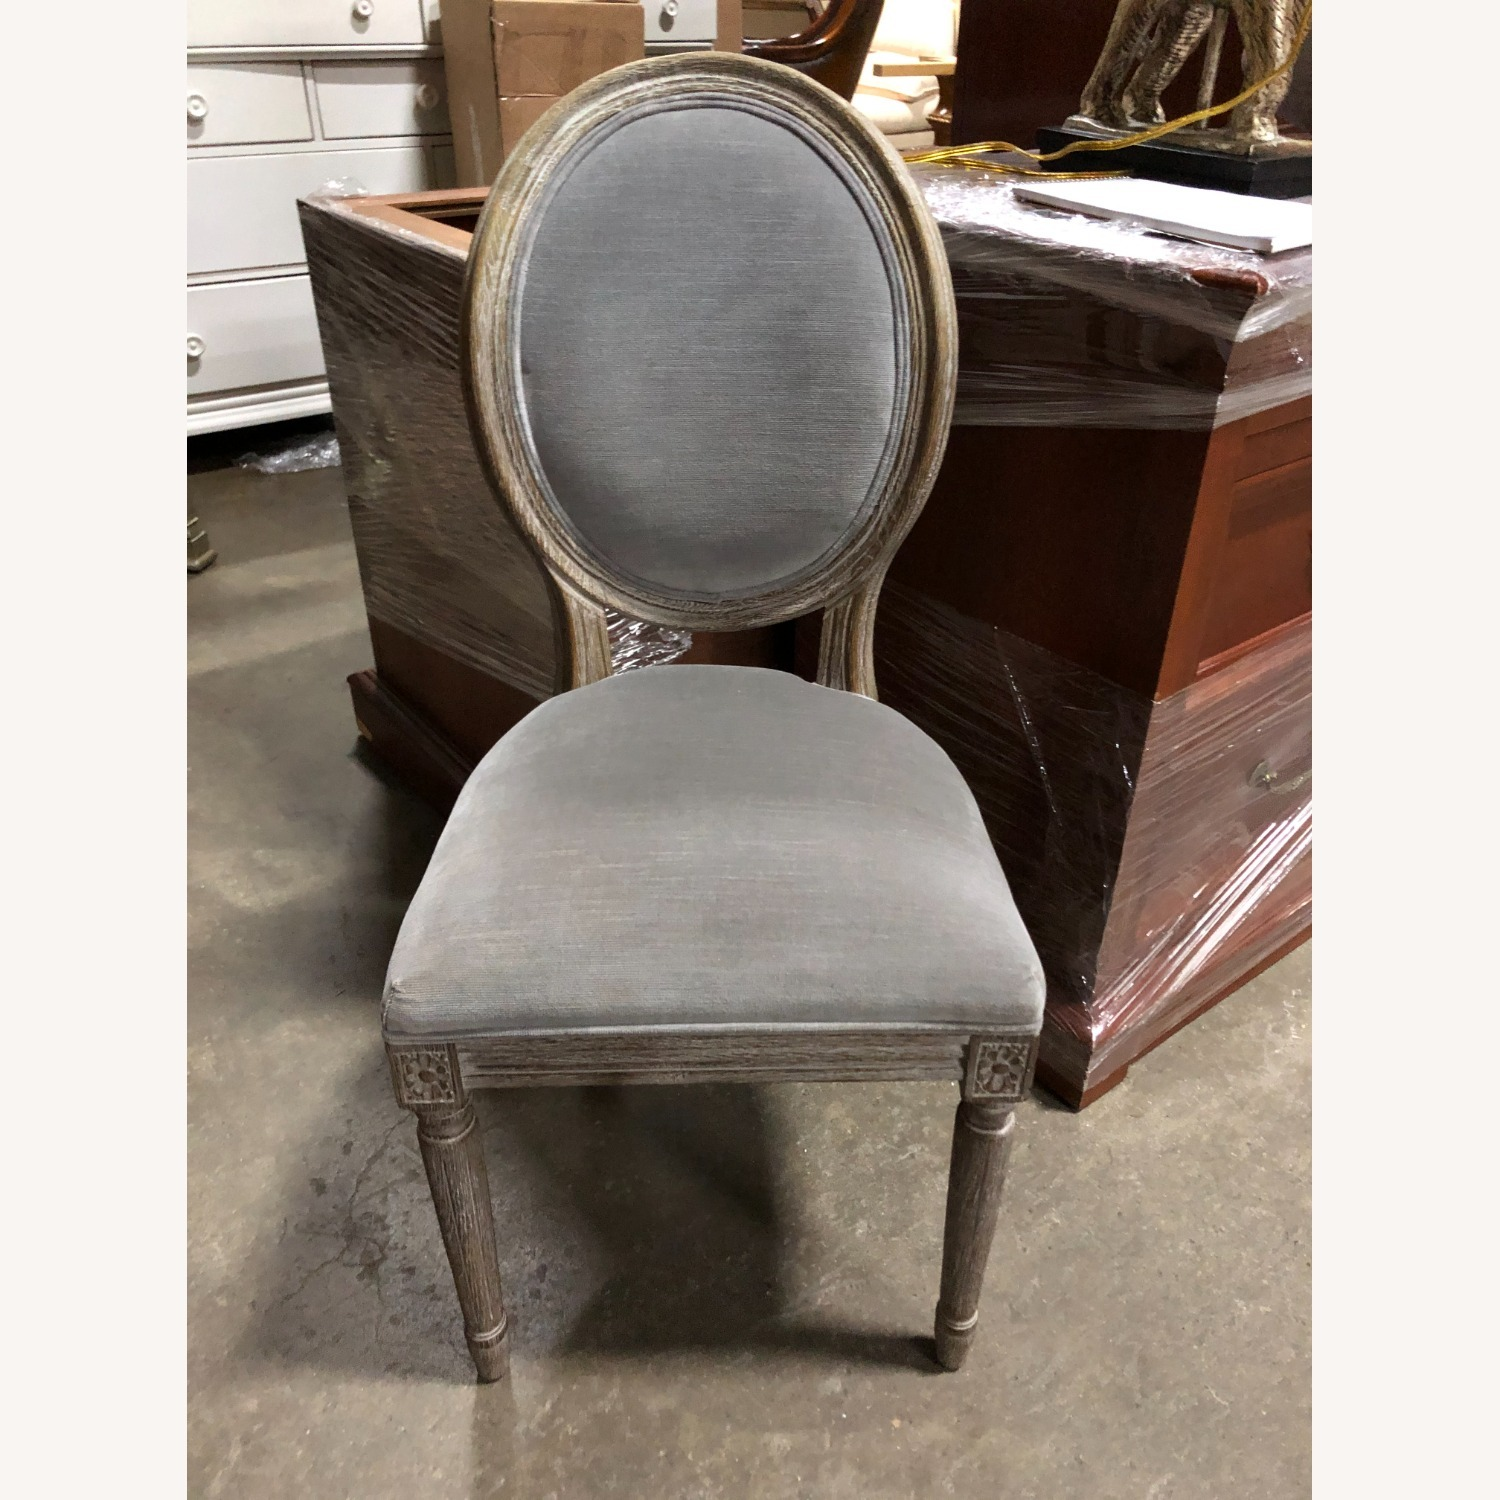 Restoration Hardware Mini Vintage French Upholstered Chair - image-1